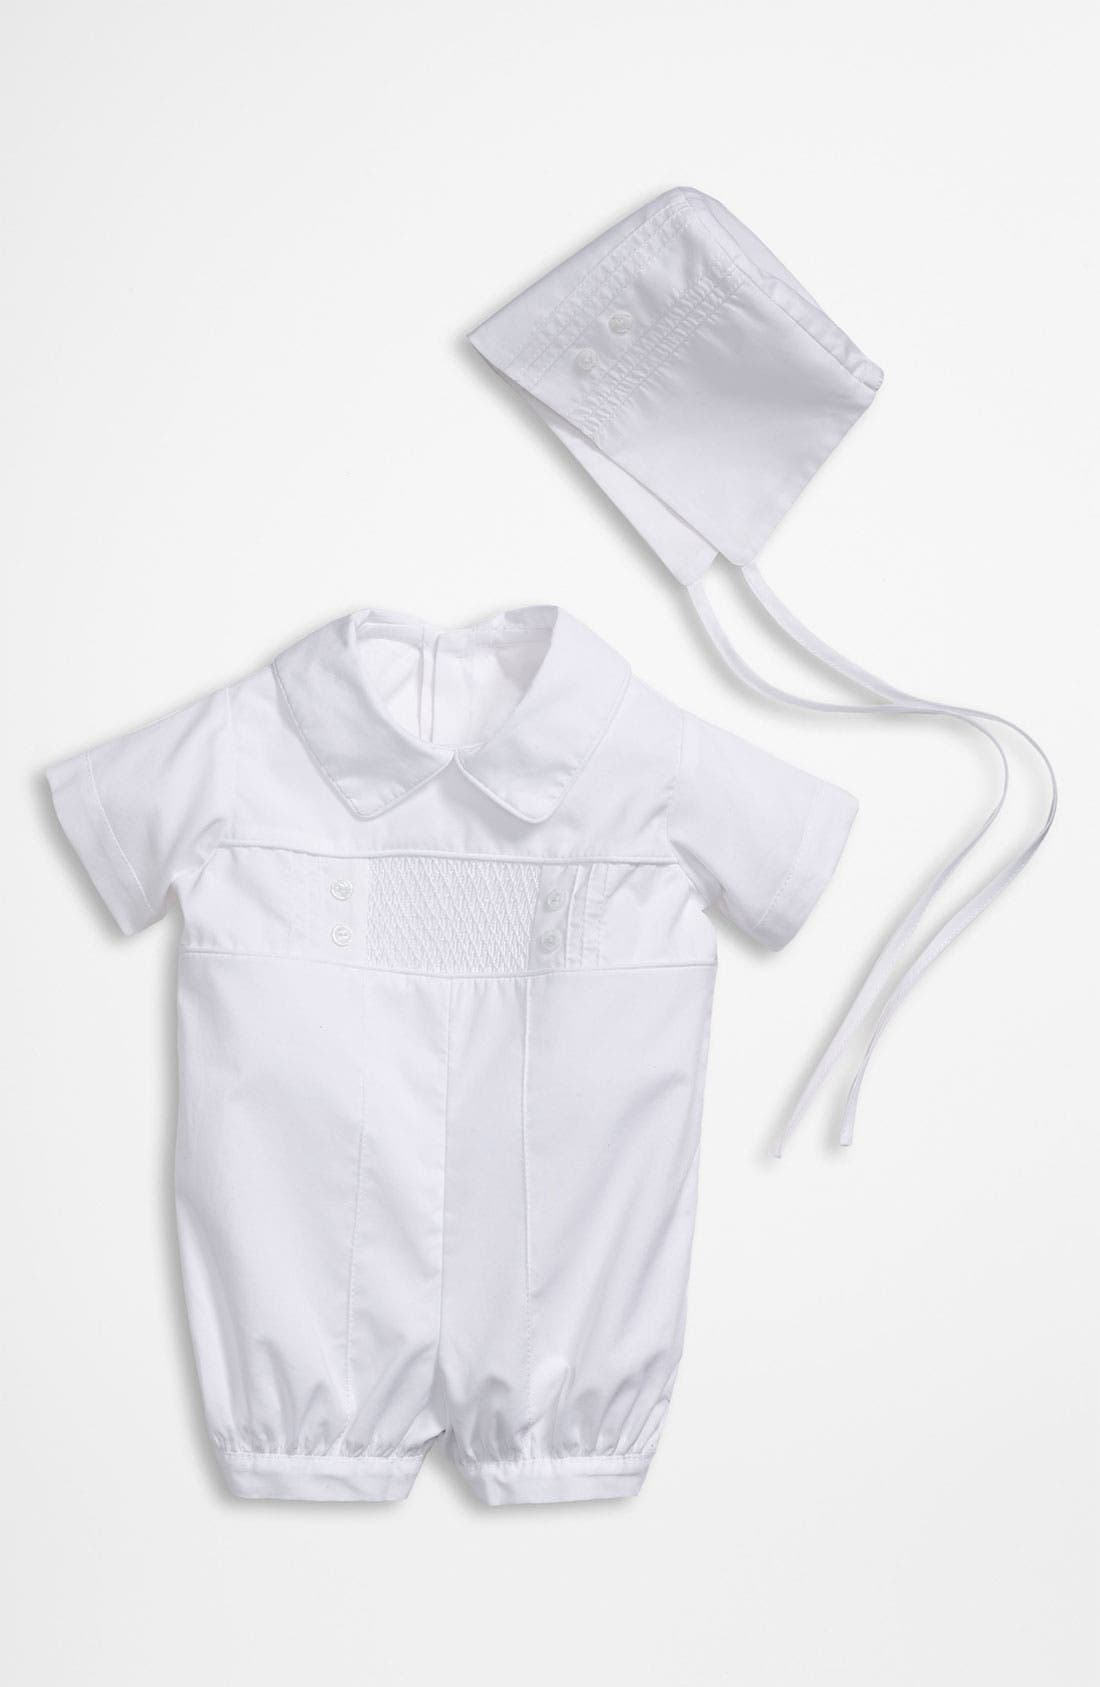 Alternate Image 1 Selected - Little Things Mean a Lot Romper & Hat Set (Baby)